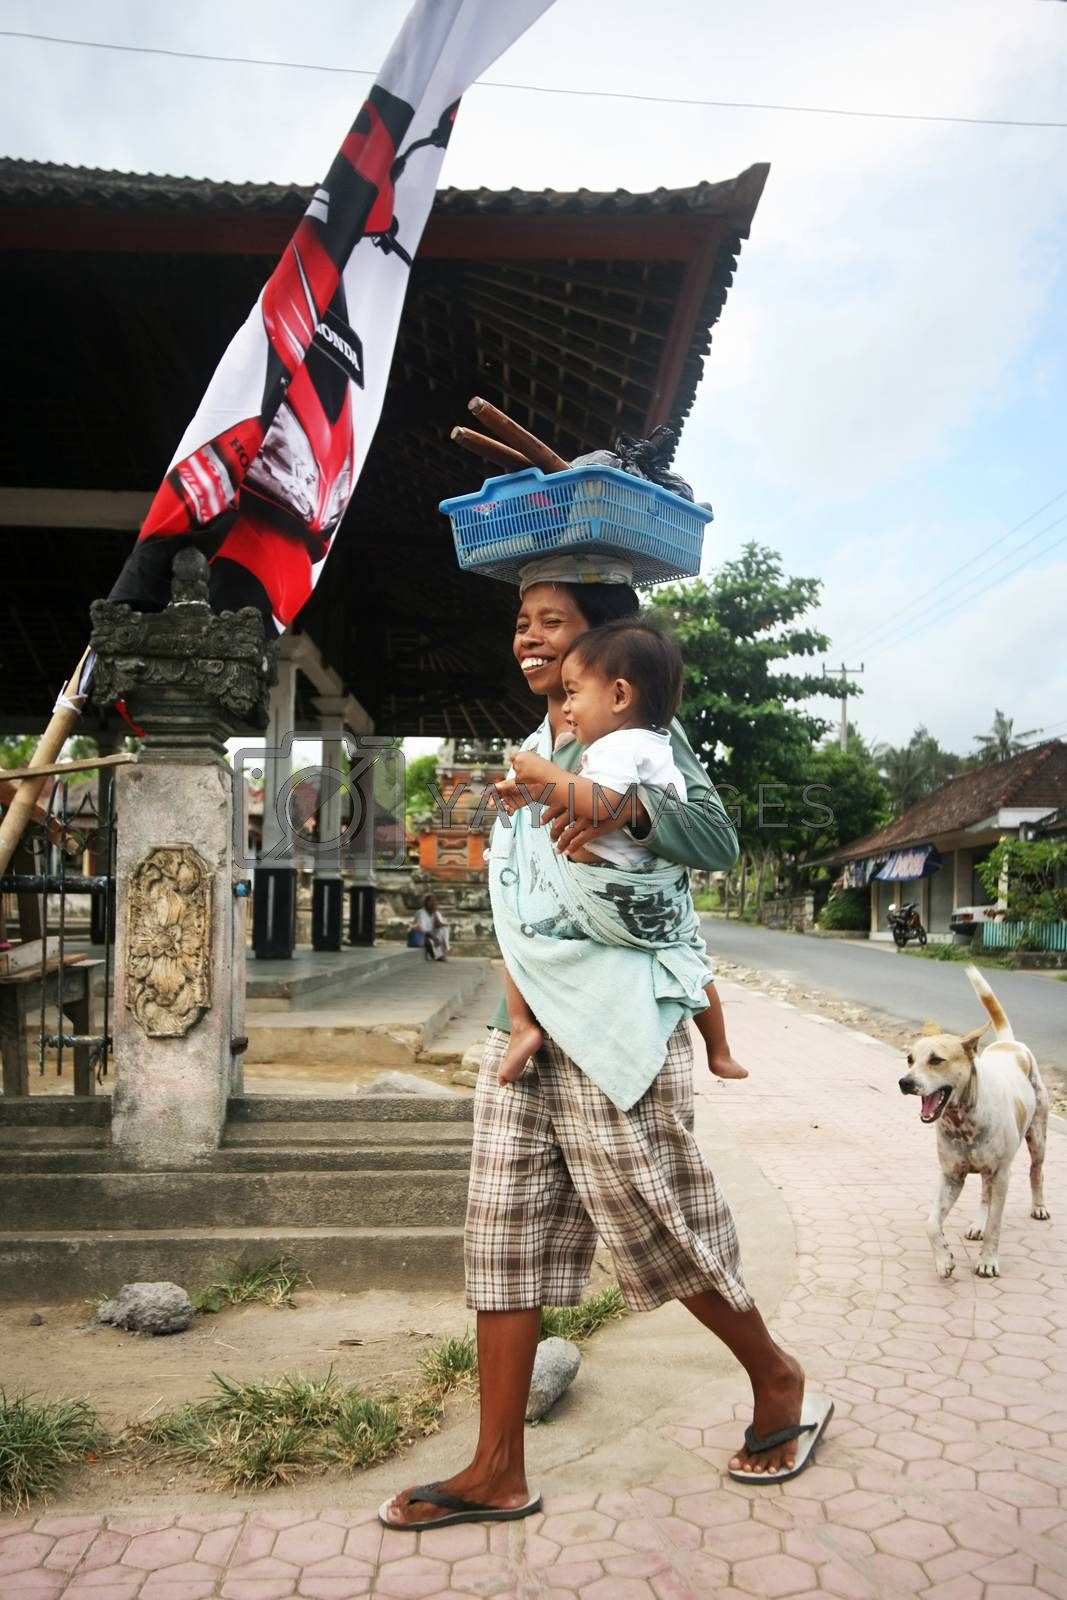 Ubud, Indonesia - October 30, 2007: The Indonesian woman with a small daughter in balines to a village on Bali